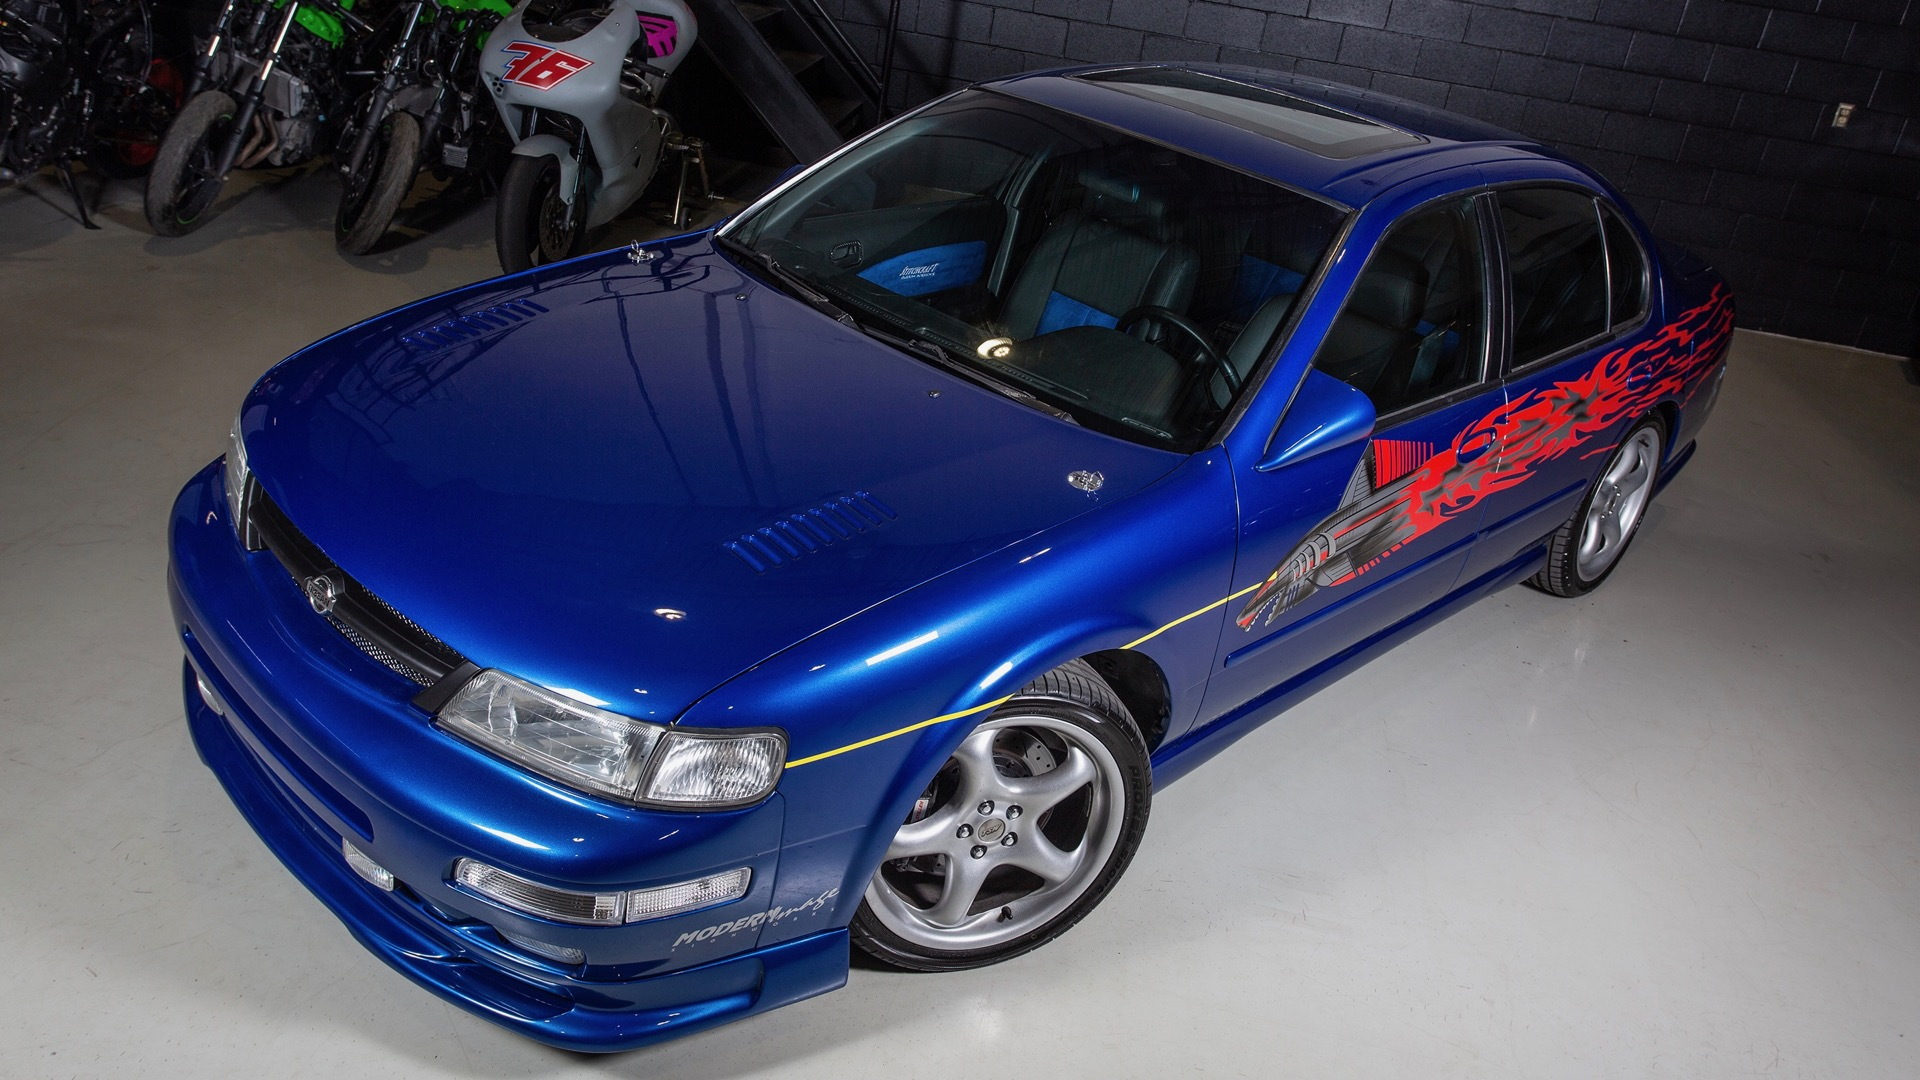 """Replica of Vince's Nissan Maxima from """"The Fast and the Furious"""" (photo via Dominic Dubreuil)"""